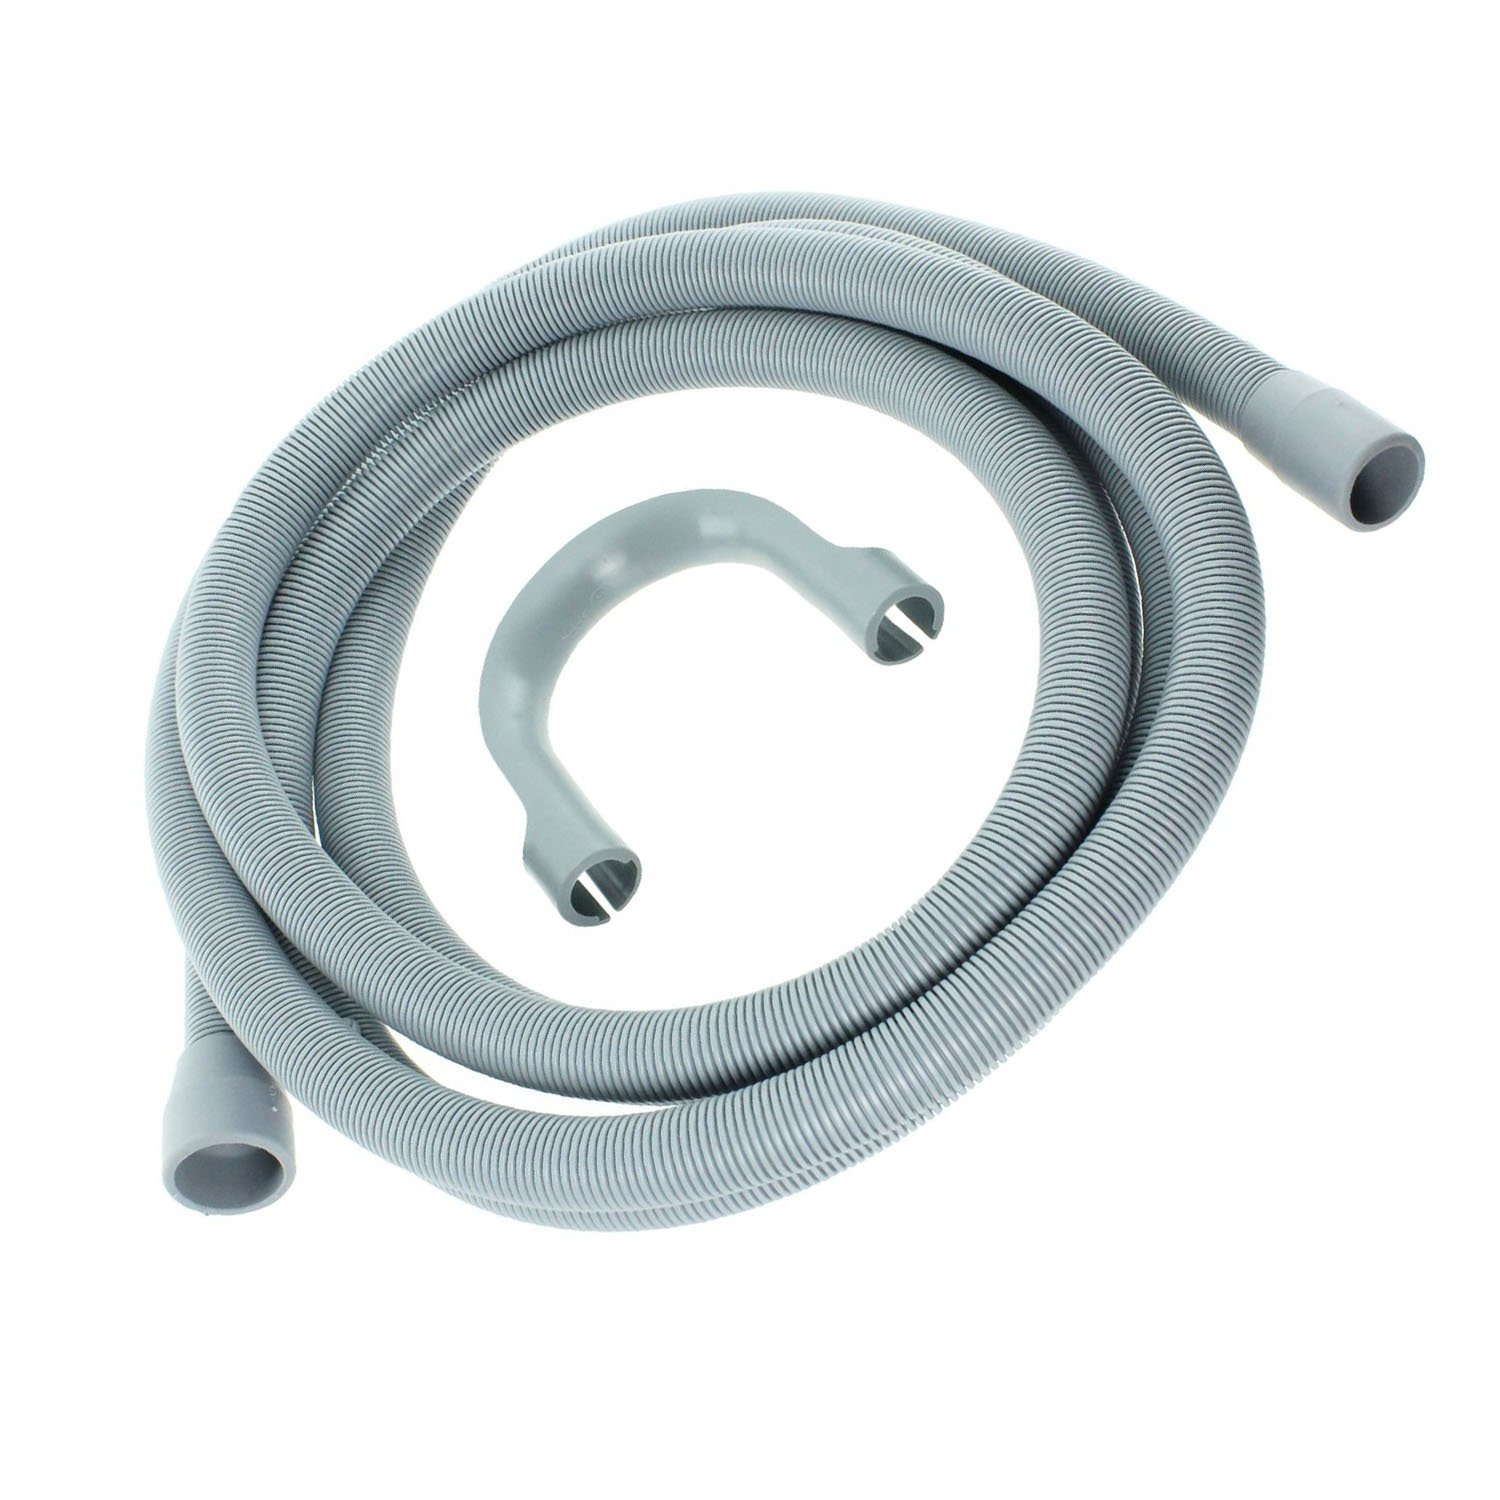 SPARES2GO Drain Hose Extension for Lamona Dishwasher 2.5M, 18mm // 22mm